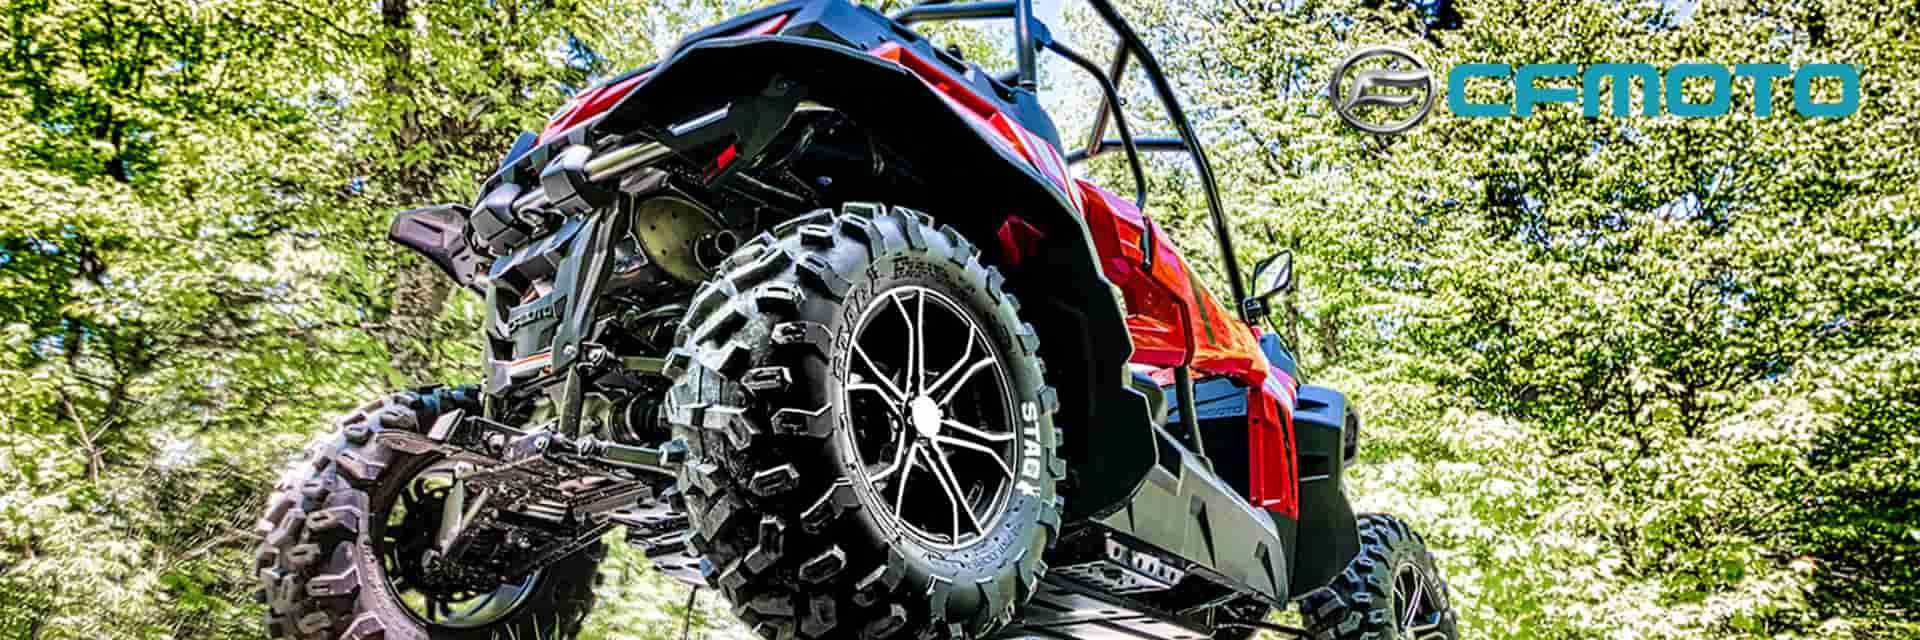 CFMOTO is available at Ronnie's Motor Sports | Guilderland, NY